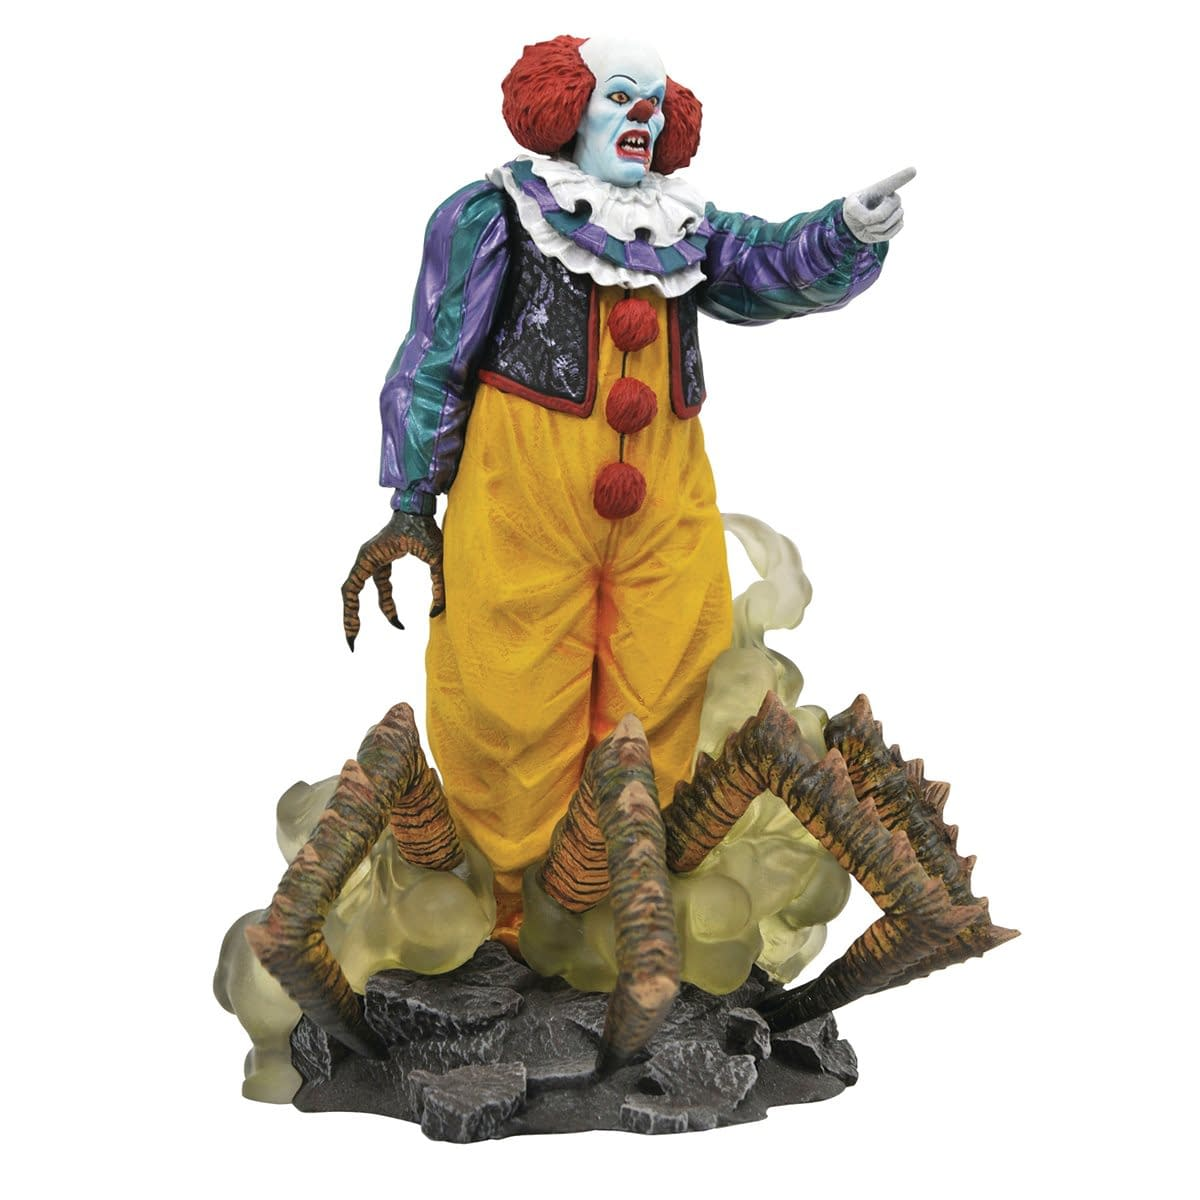 Diamond Select Toys Announces Statues for Ghostbusters and More